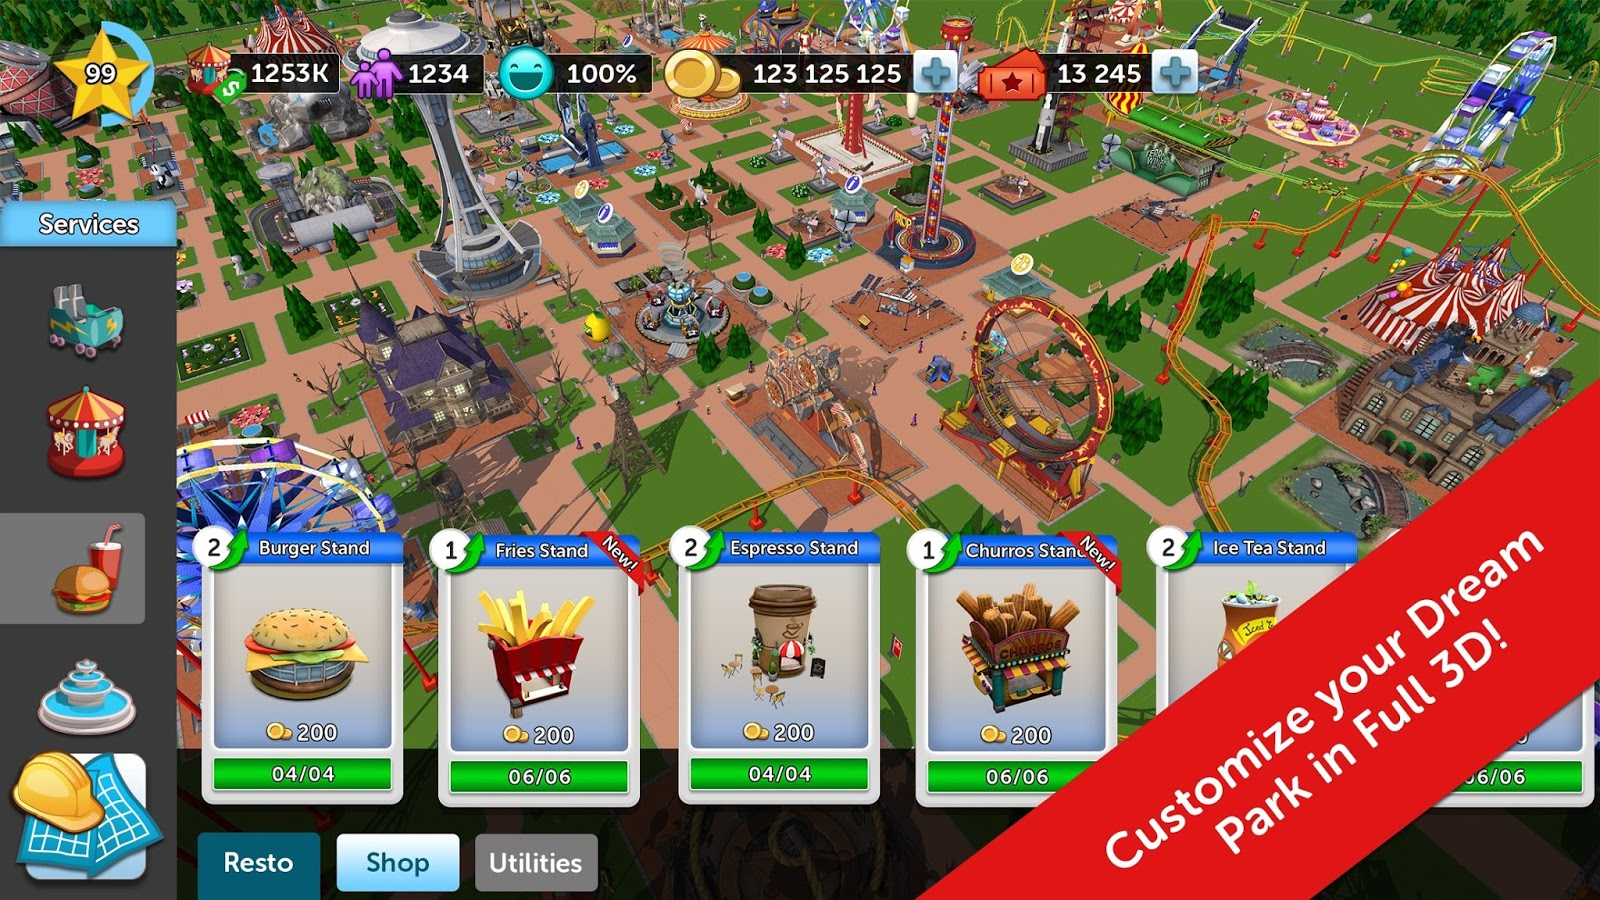 Gameburnworld game fixes zoo tycoon 2 hunger games 2 annie casting